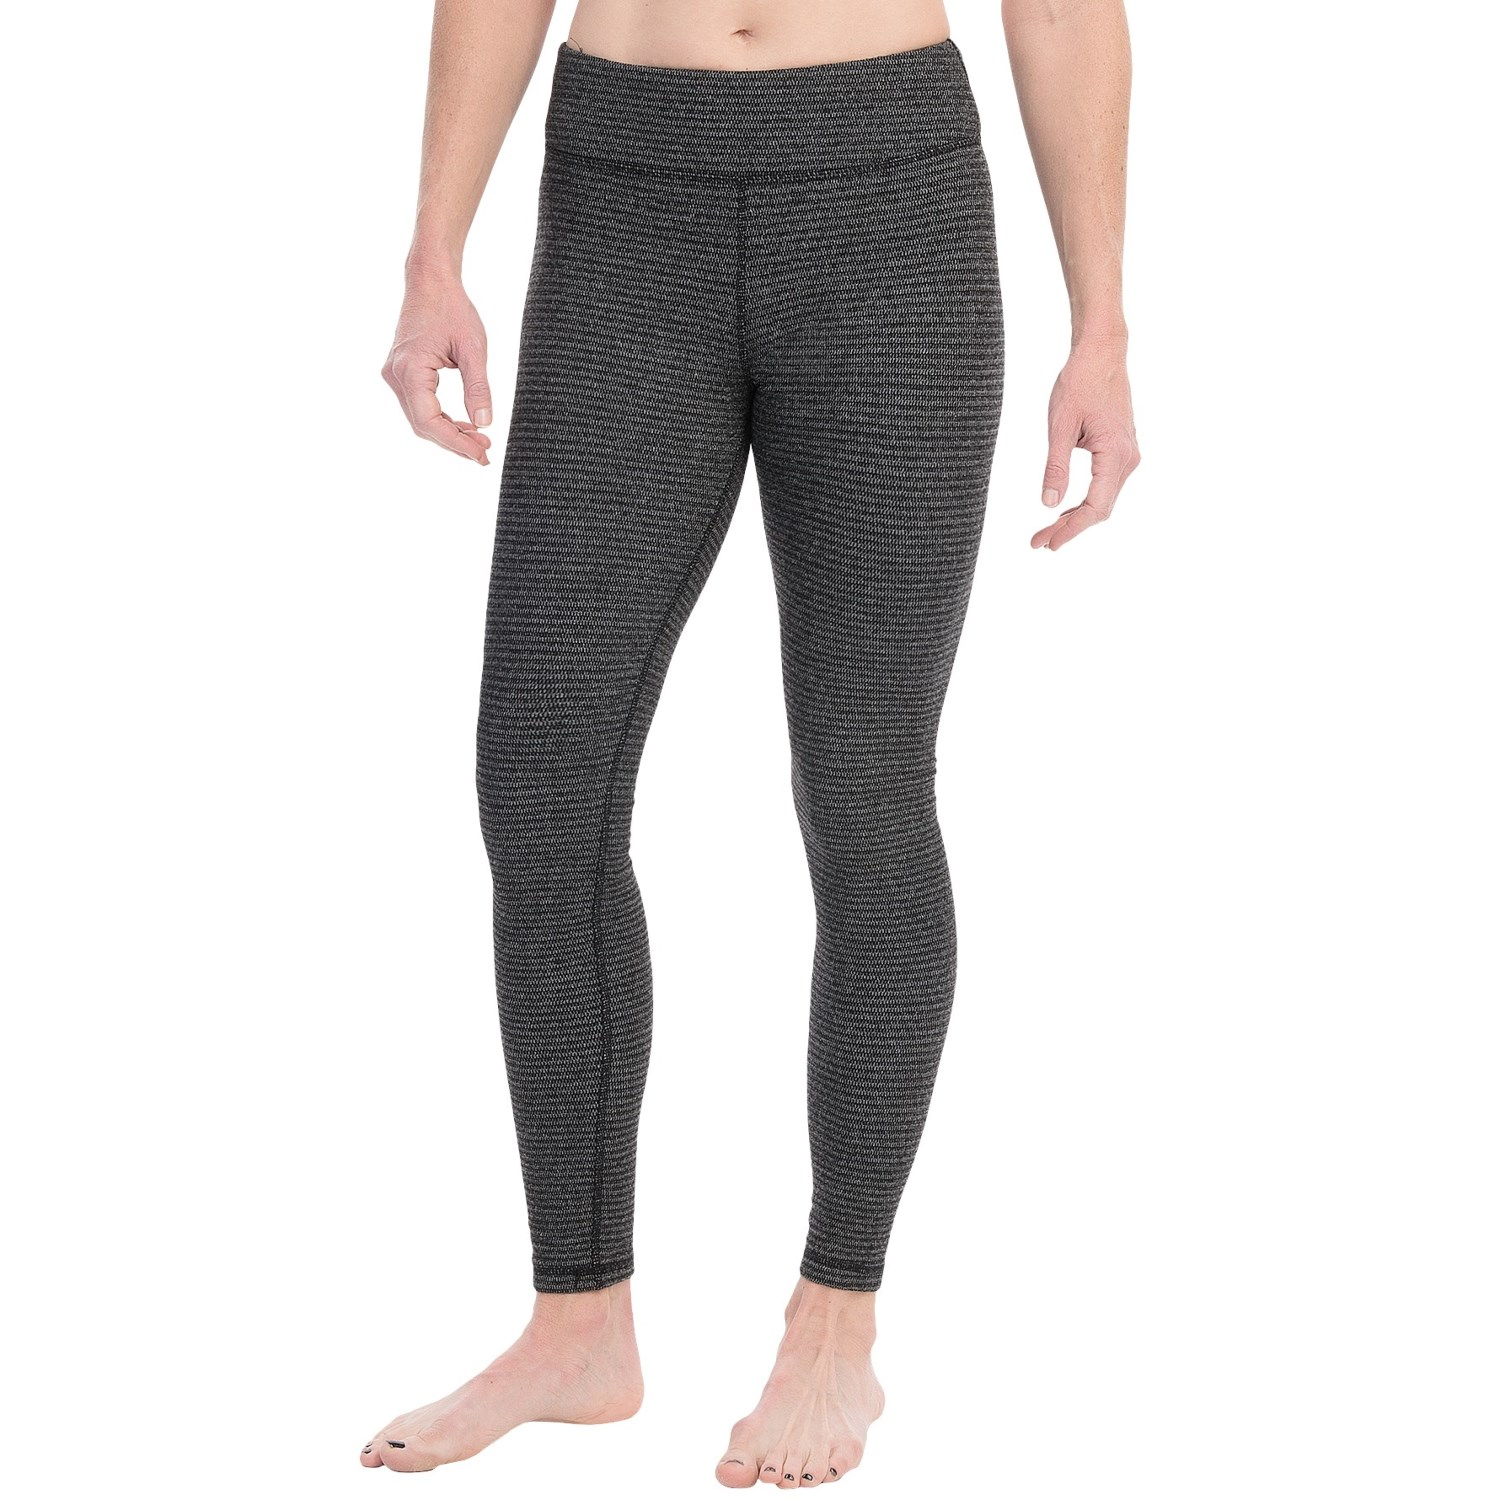 Kyodan Warmhand Loose-Fit Leggings (For Women) 104AR